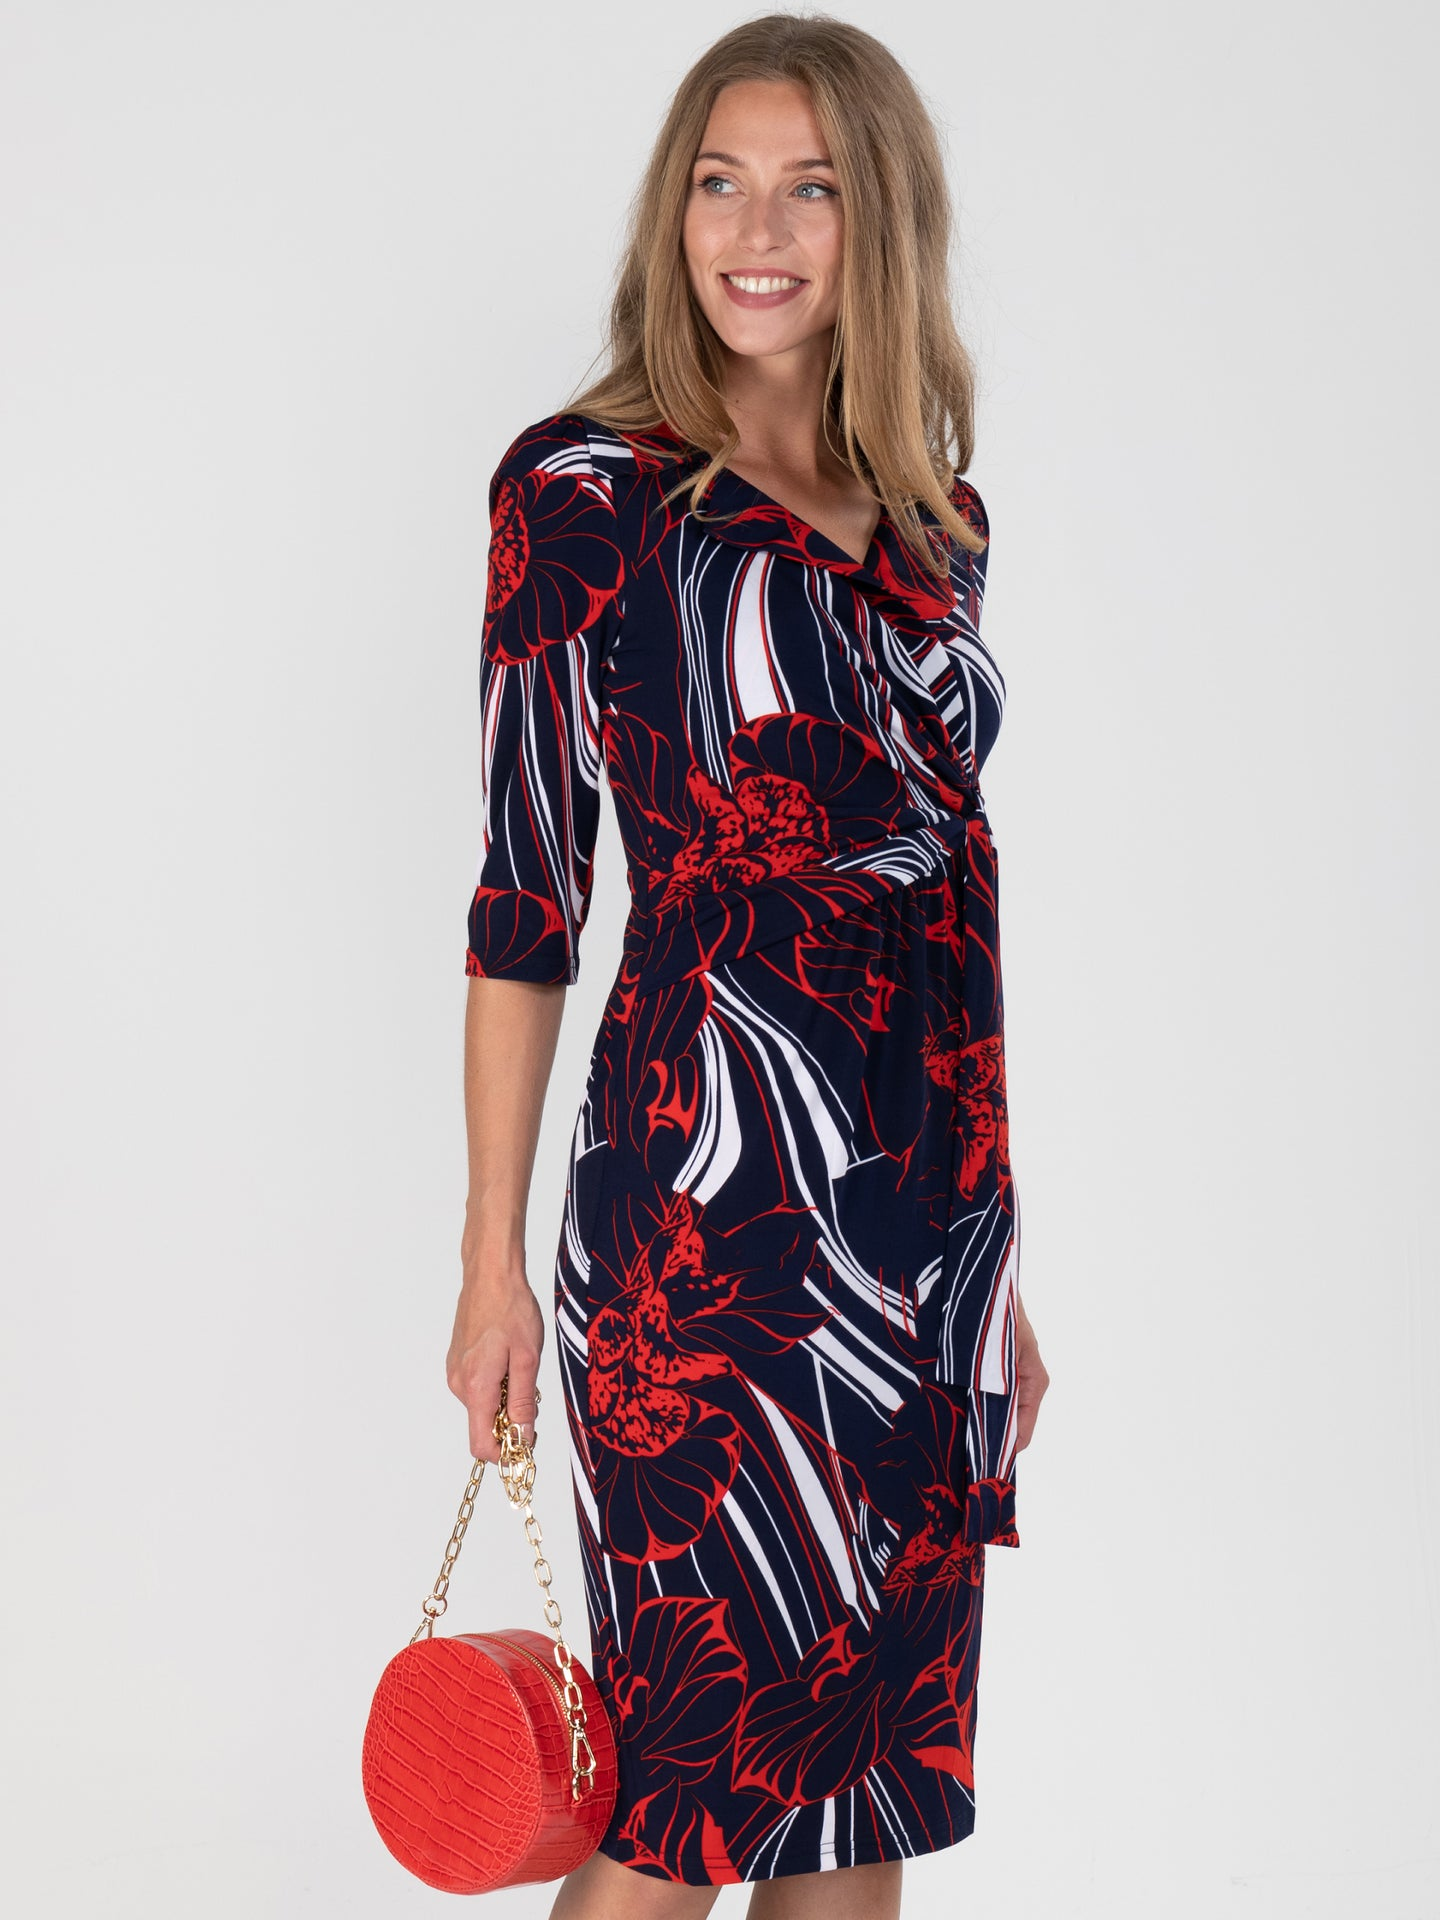 Revere Collar Sleeved Pencil Dress, Floral Multi